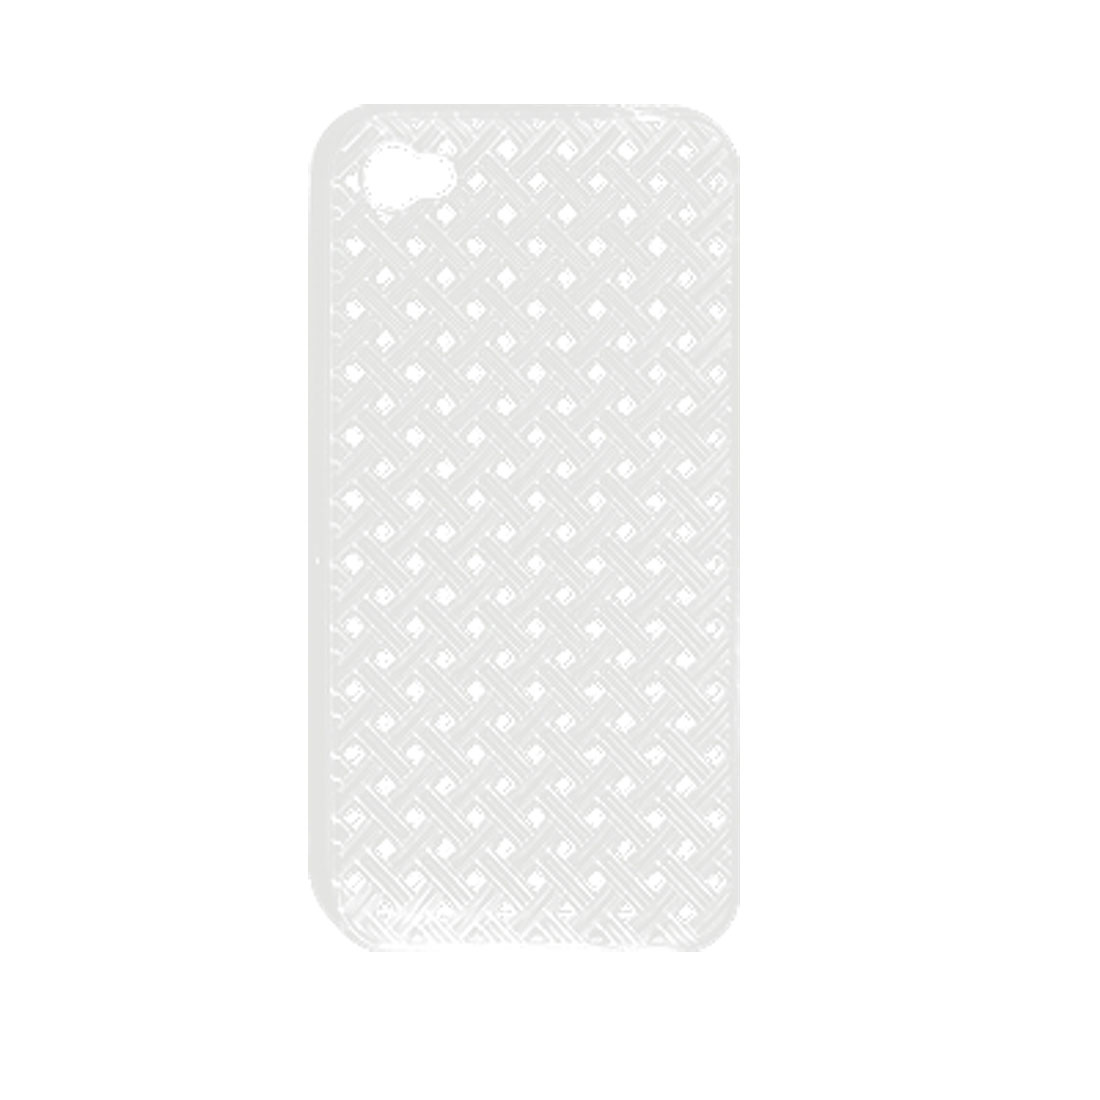 Clear Hollow Out Woven Pattern Soft Plastic Case Cover for iPhone 4 4G